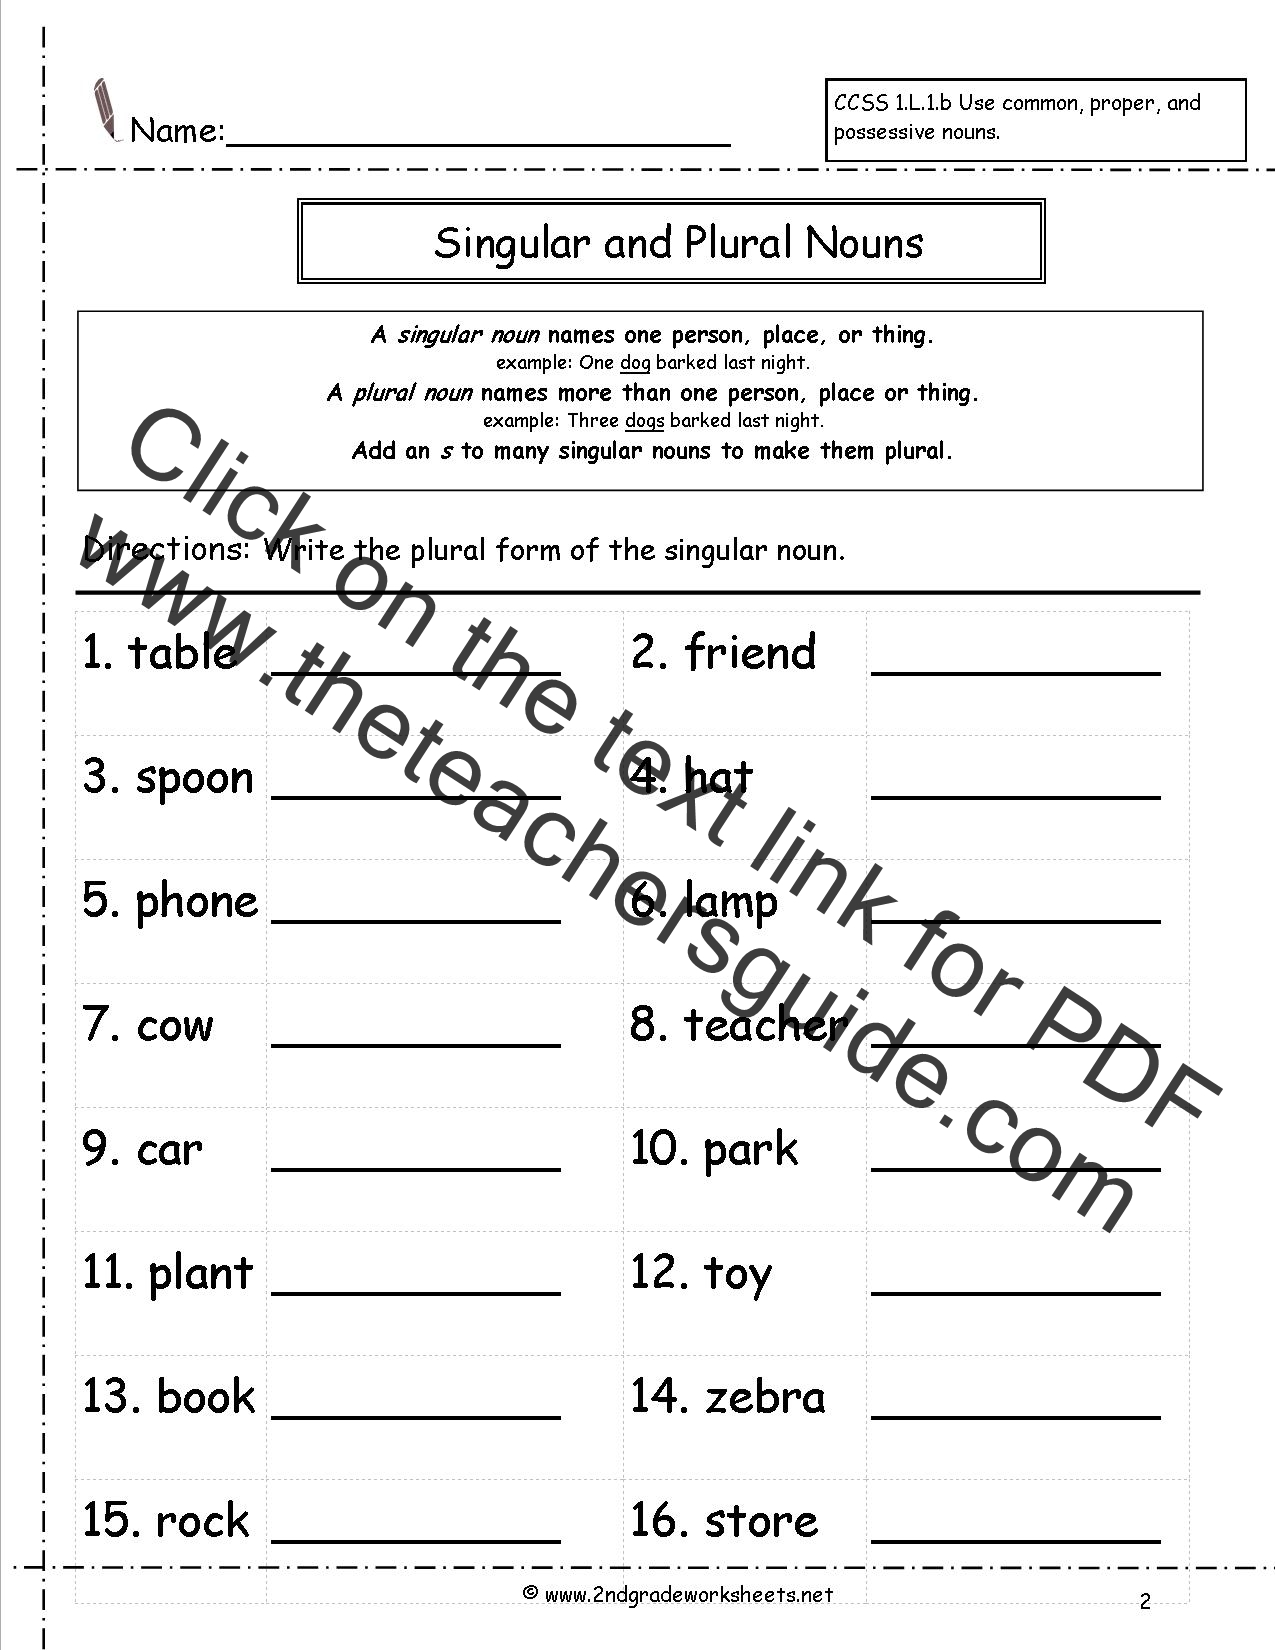 Worksheet Singular And Plural Worksheets For Kids singular and plural nouns worksheets worksheet